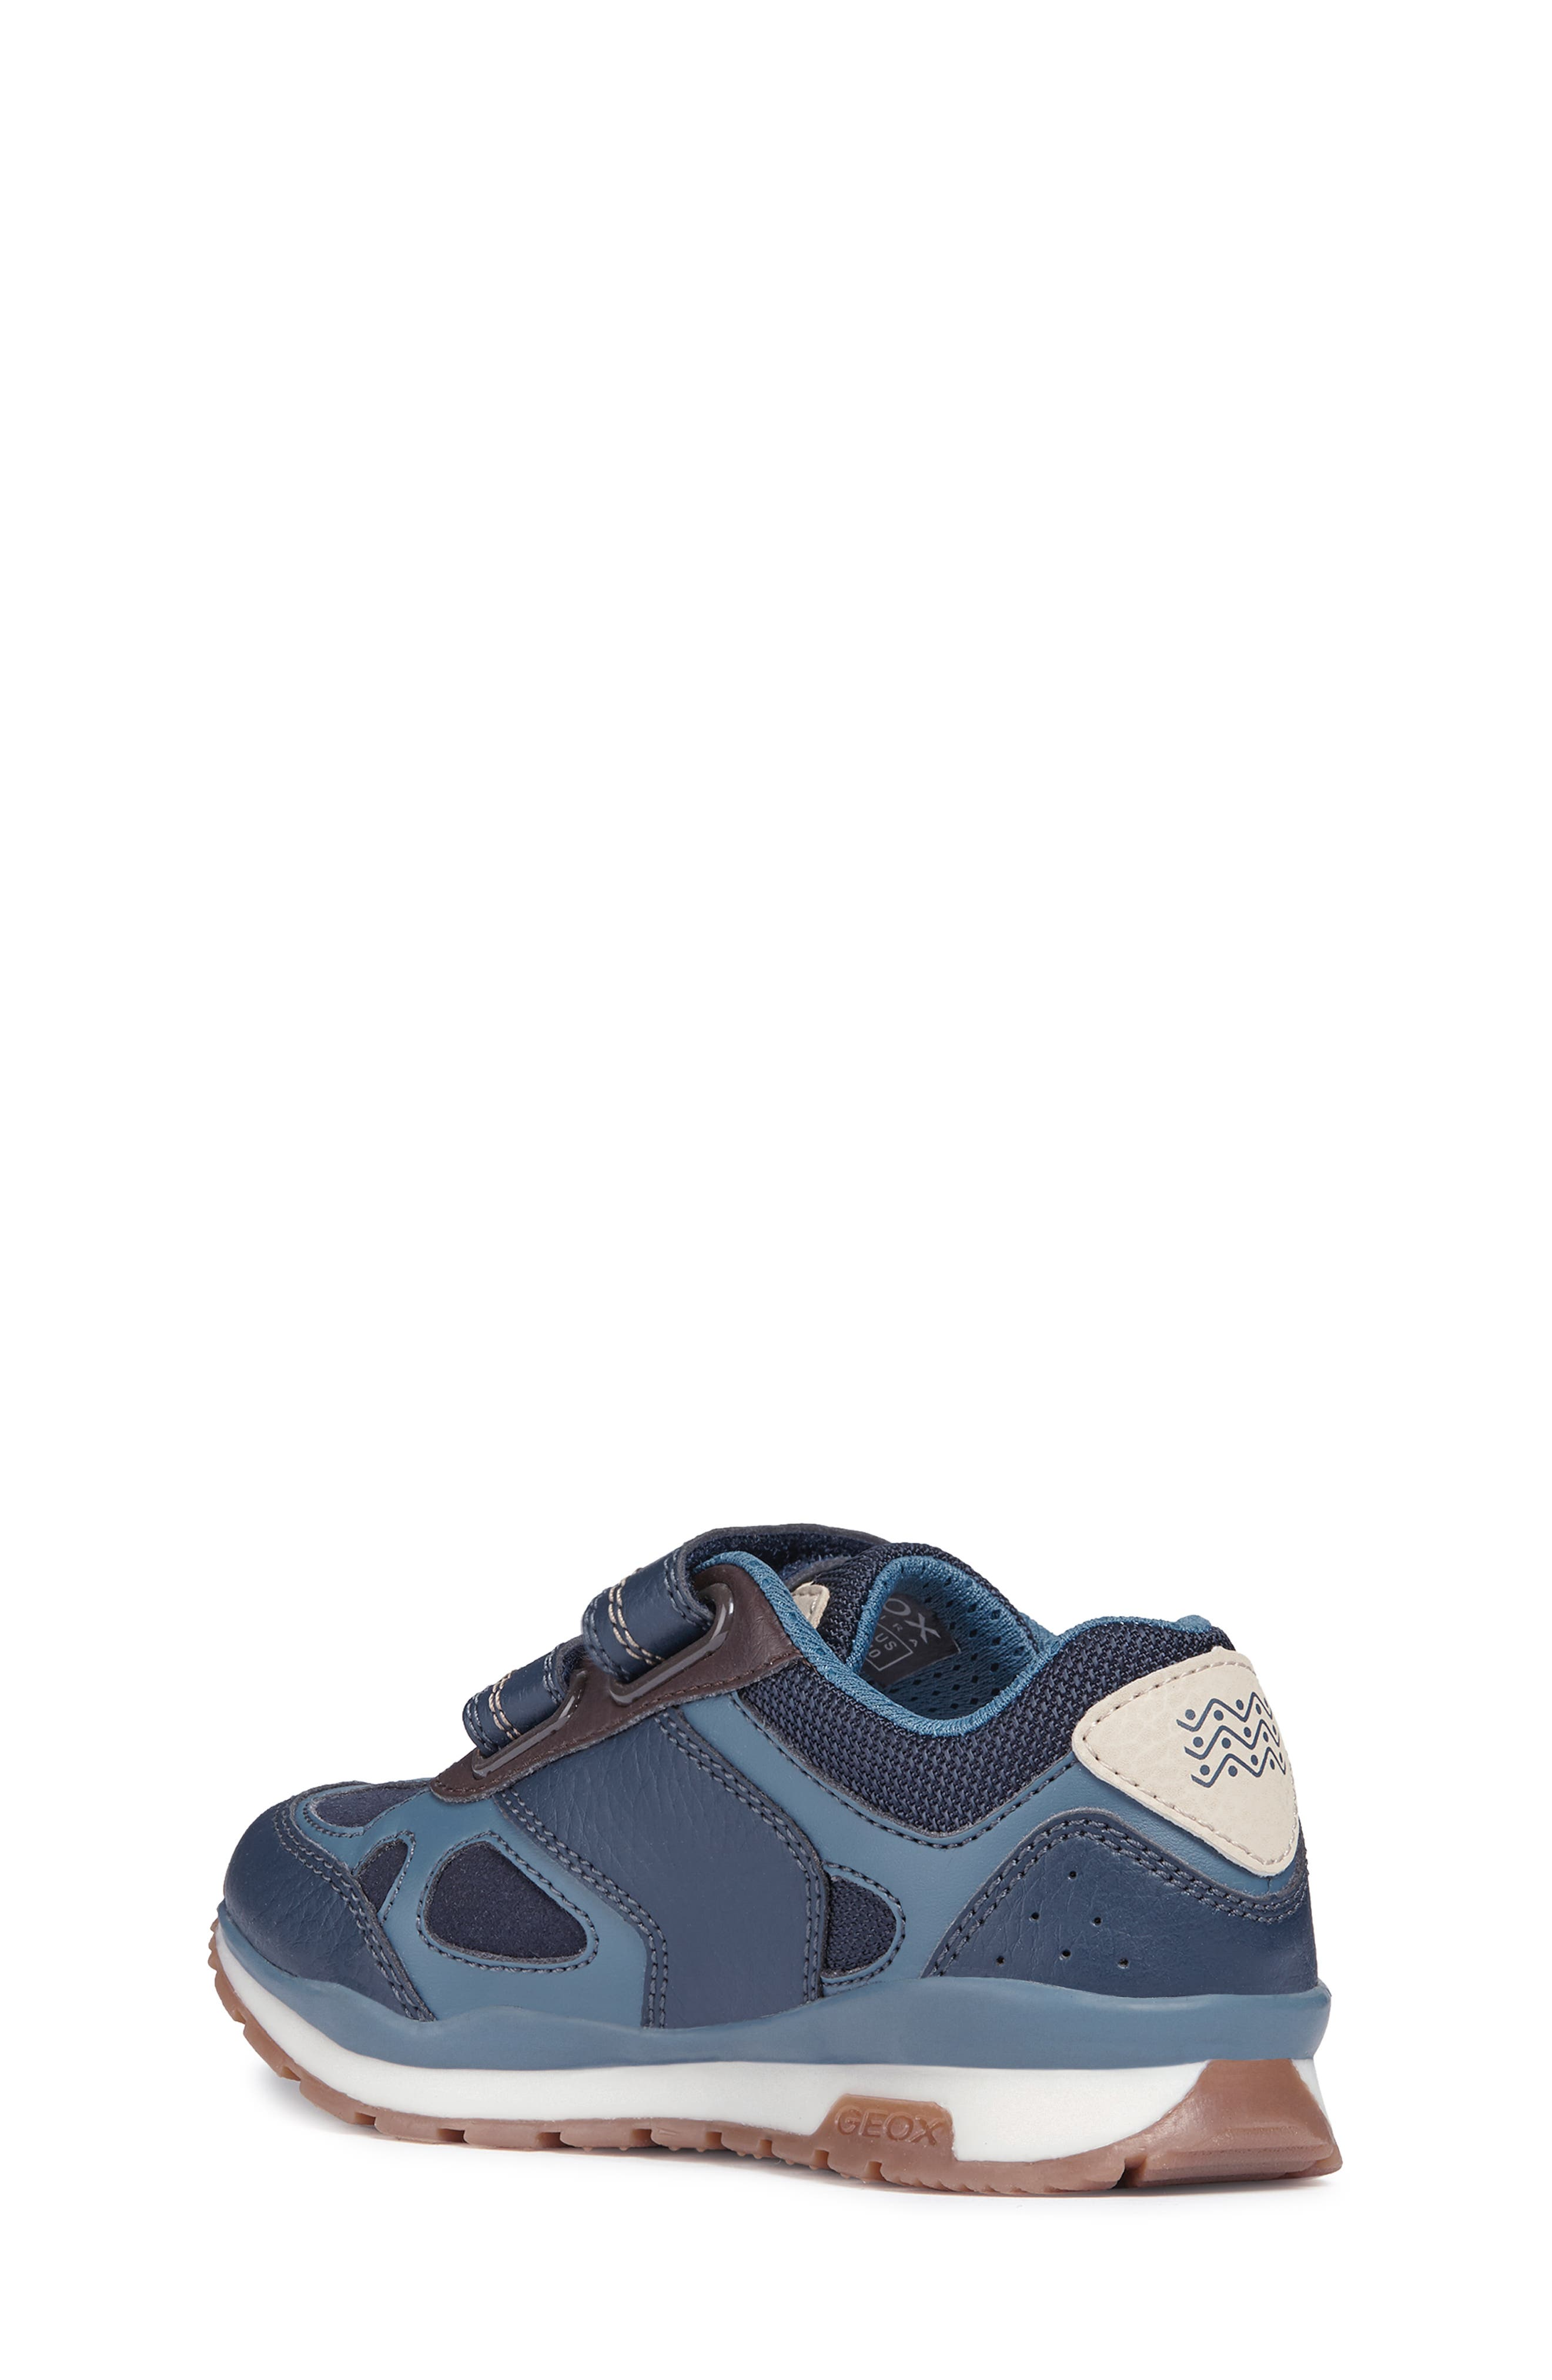 Pavel Sneaker,                             Alternate thumbnail 2, color,                             Navy/Avio